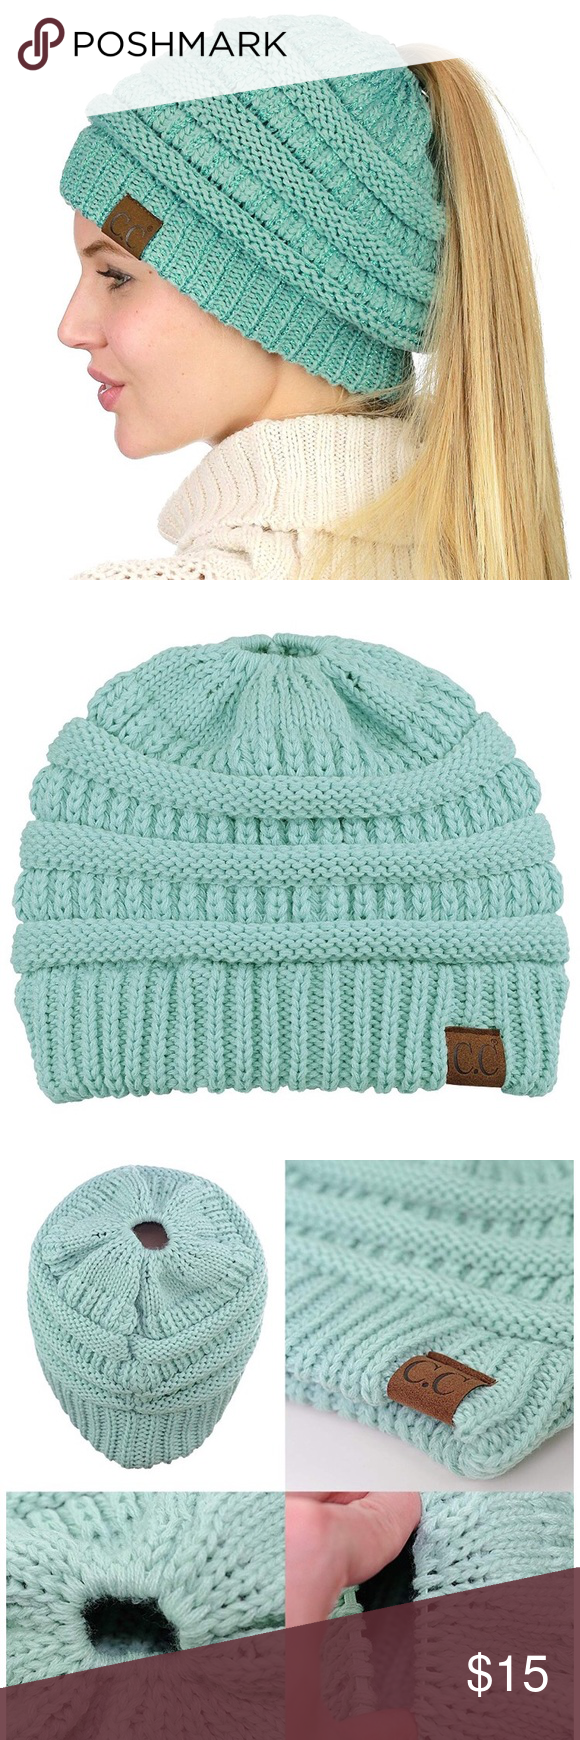 bcd4a8a11e048 NWOT C.C Messy Bun Beanie Tail Hat in Mint So cute for messy buns or  ponytails